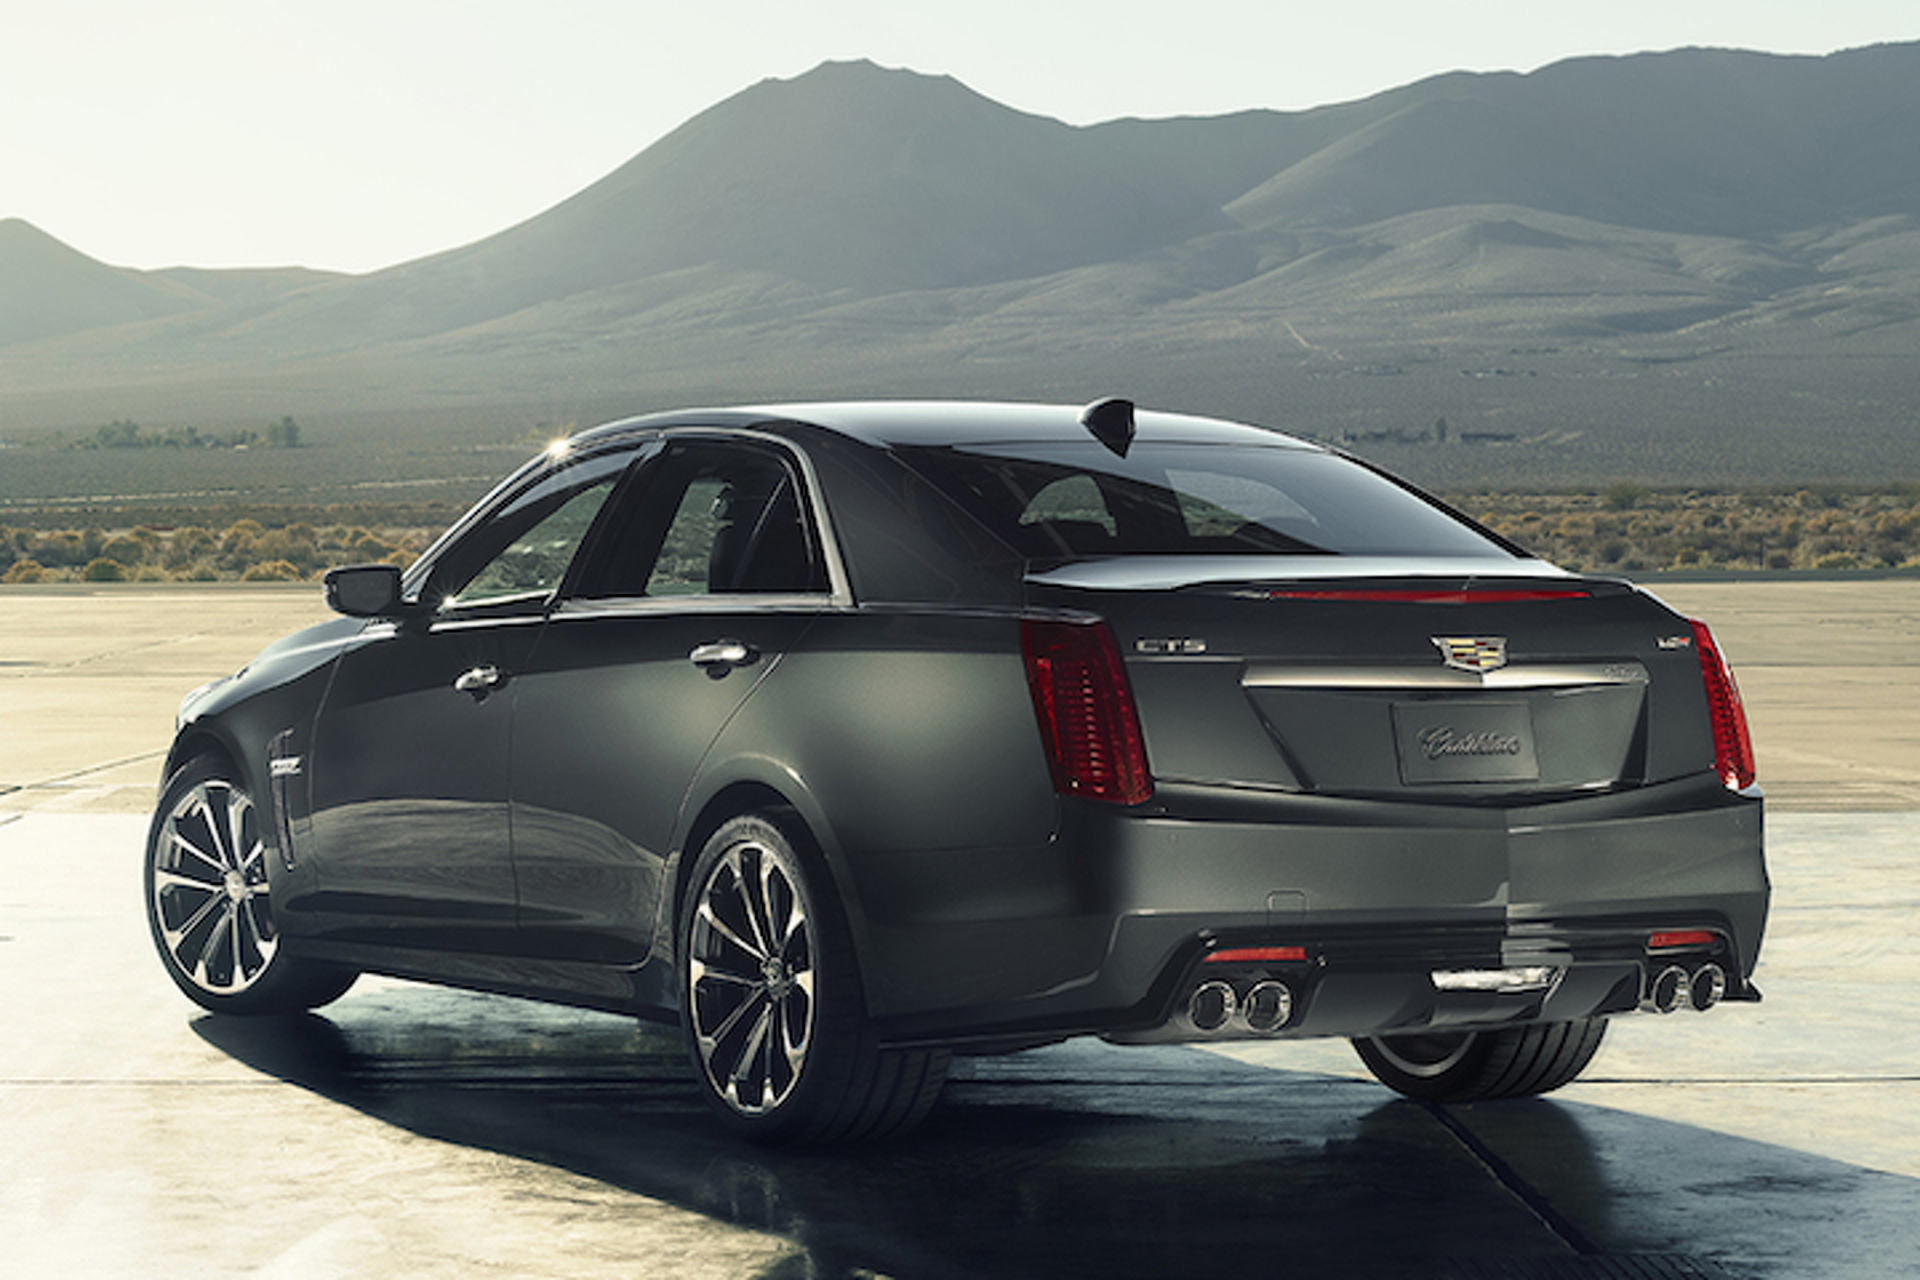 Cadillac Contemplating Hybrid All-Wheel Drive